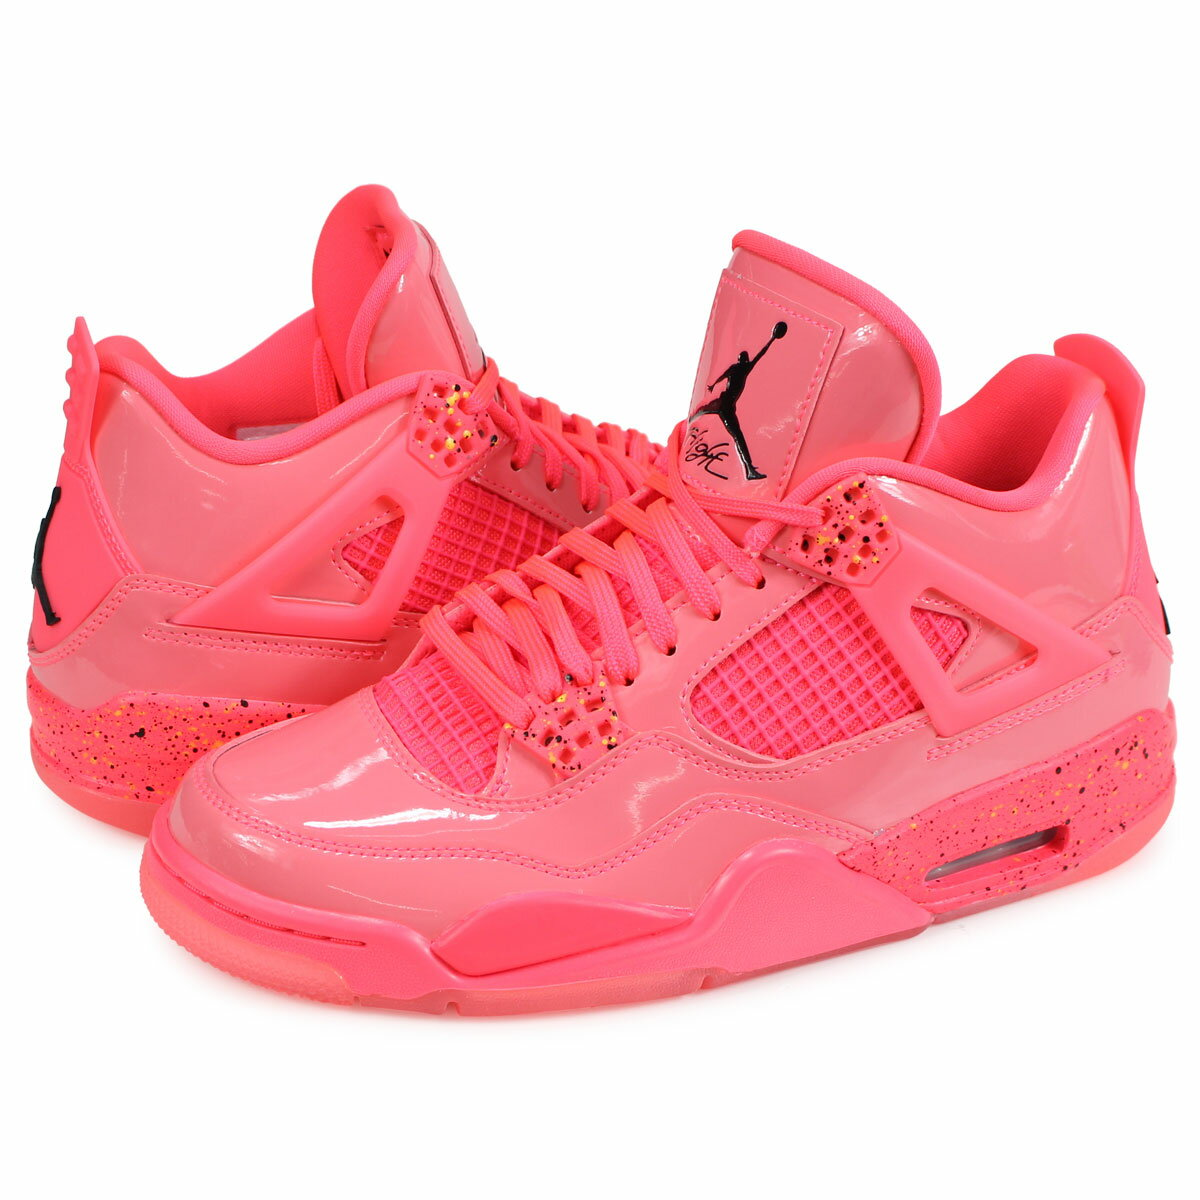 Nike NIKE Air Jordan 4 nostalgic sneakers Lady\u0027s men WMNS AIR JORDAN 4  RETRO NRG pink AQ9128,600 [191]